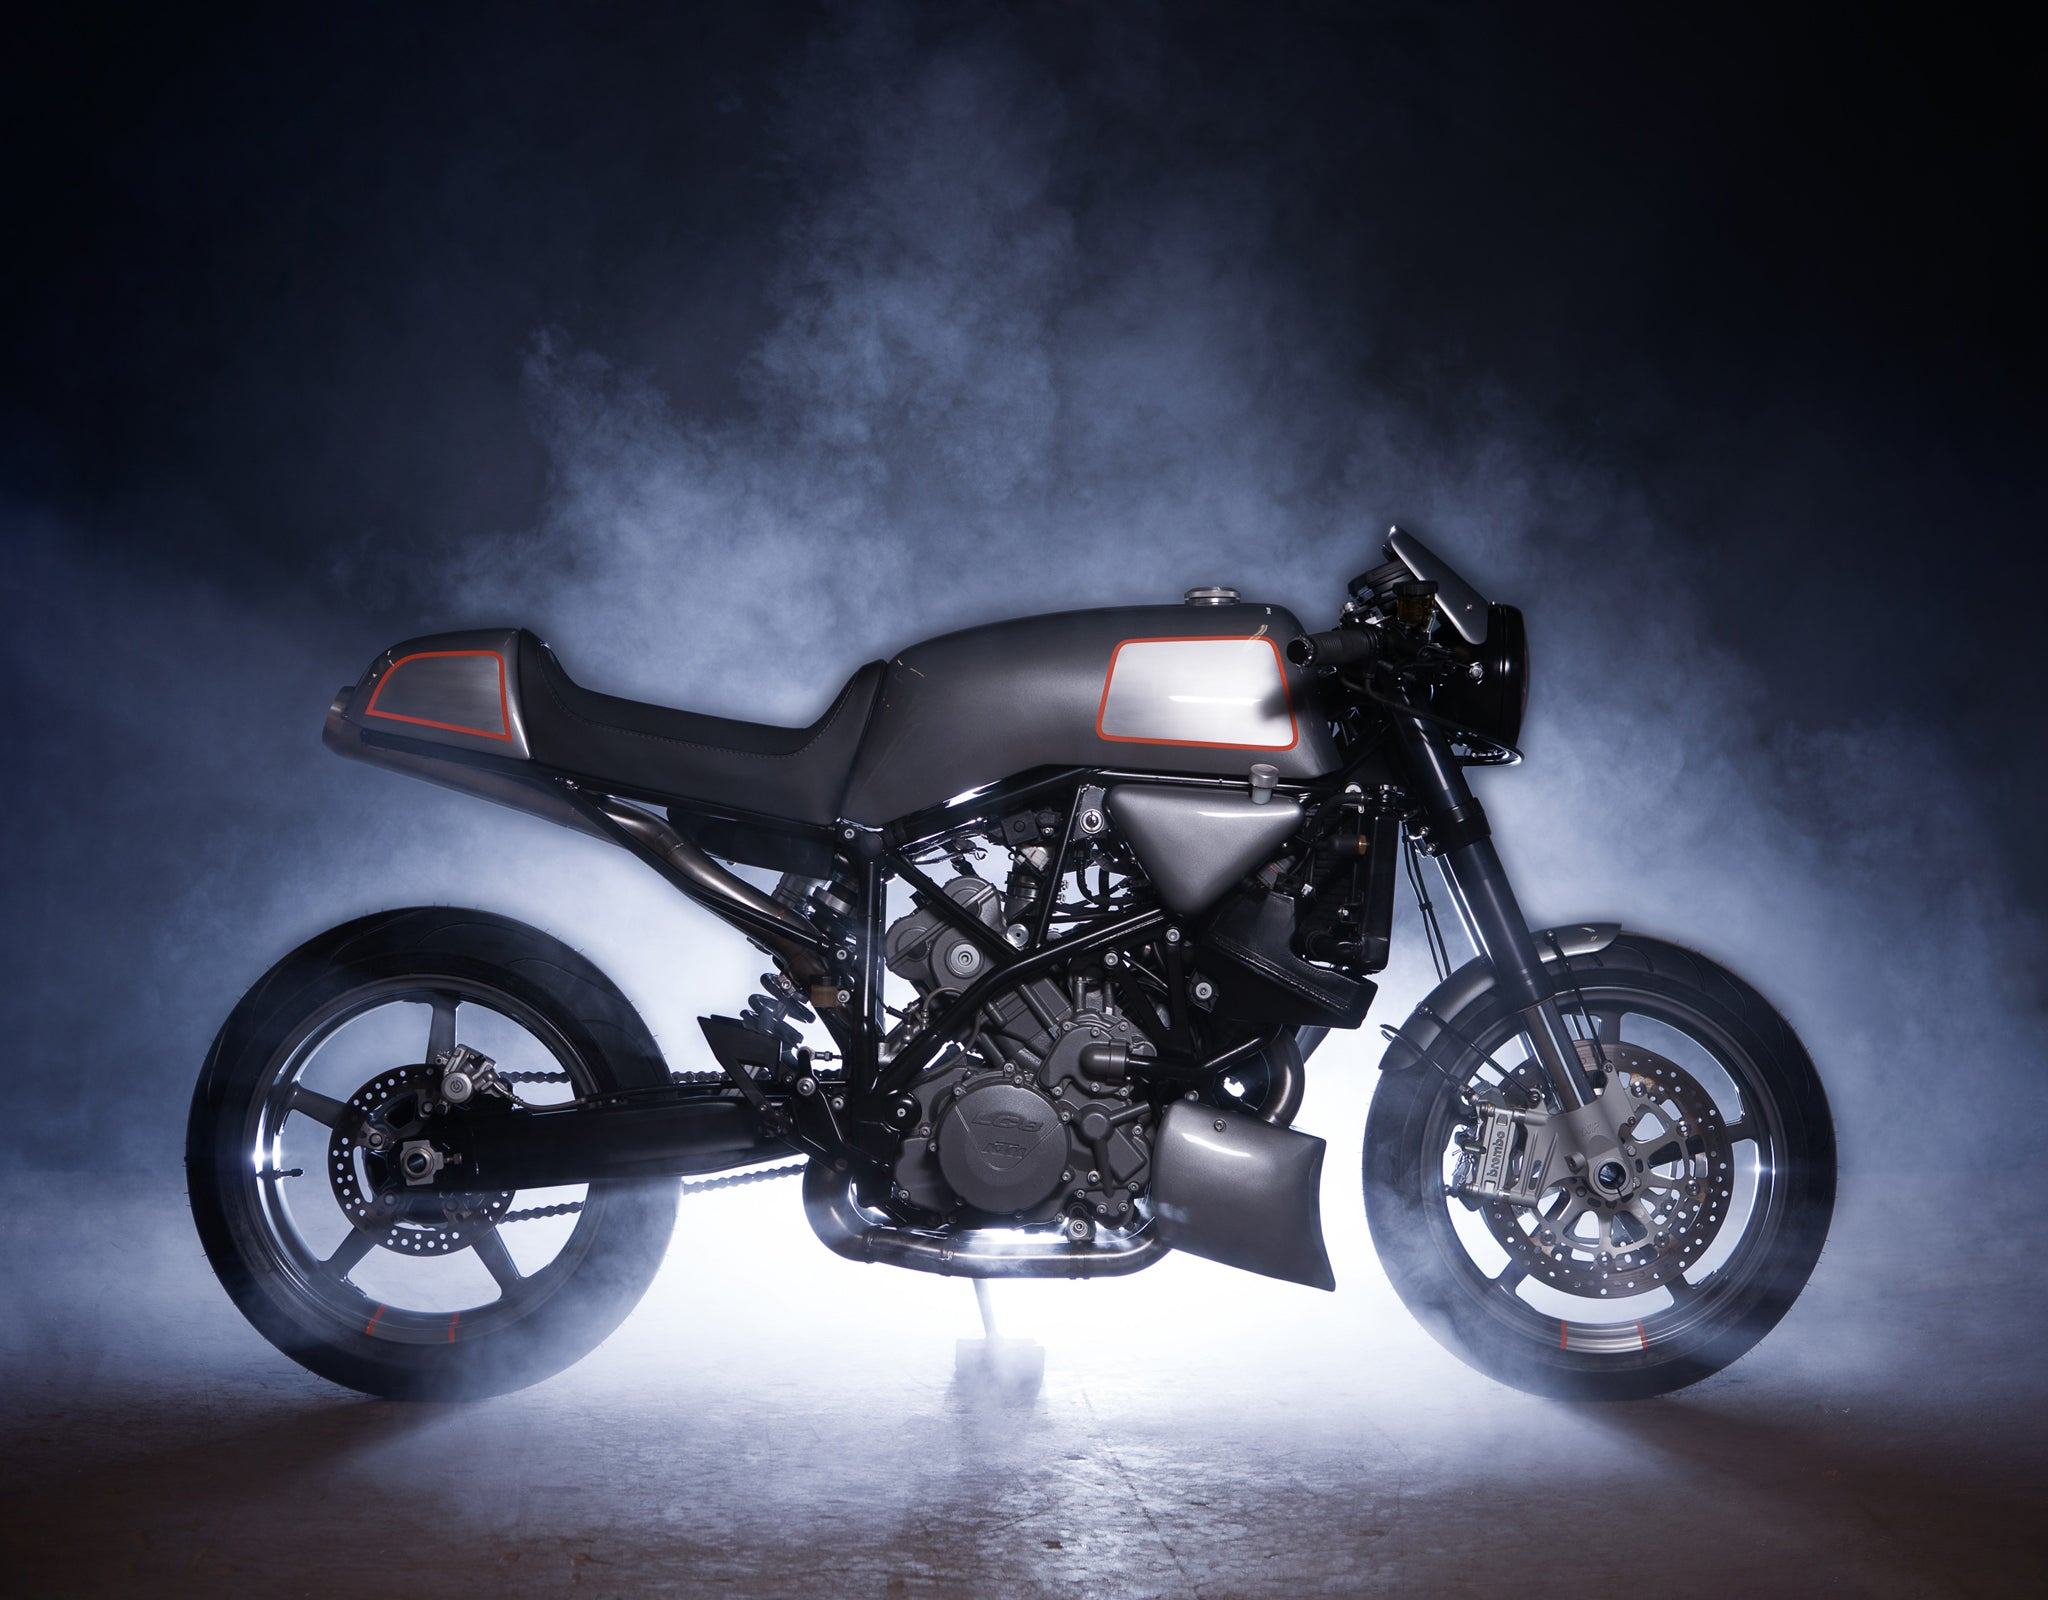 Analog Motorcycles KTM Superduke 990 with M7 Headlight